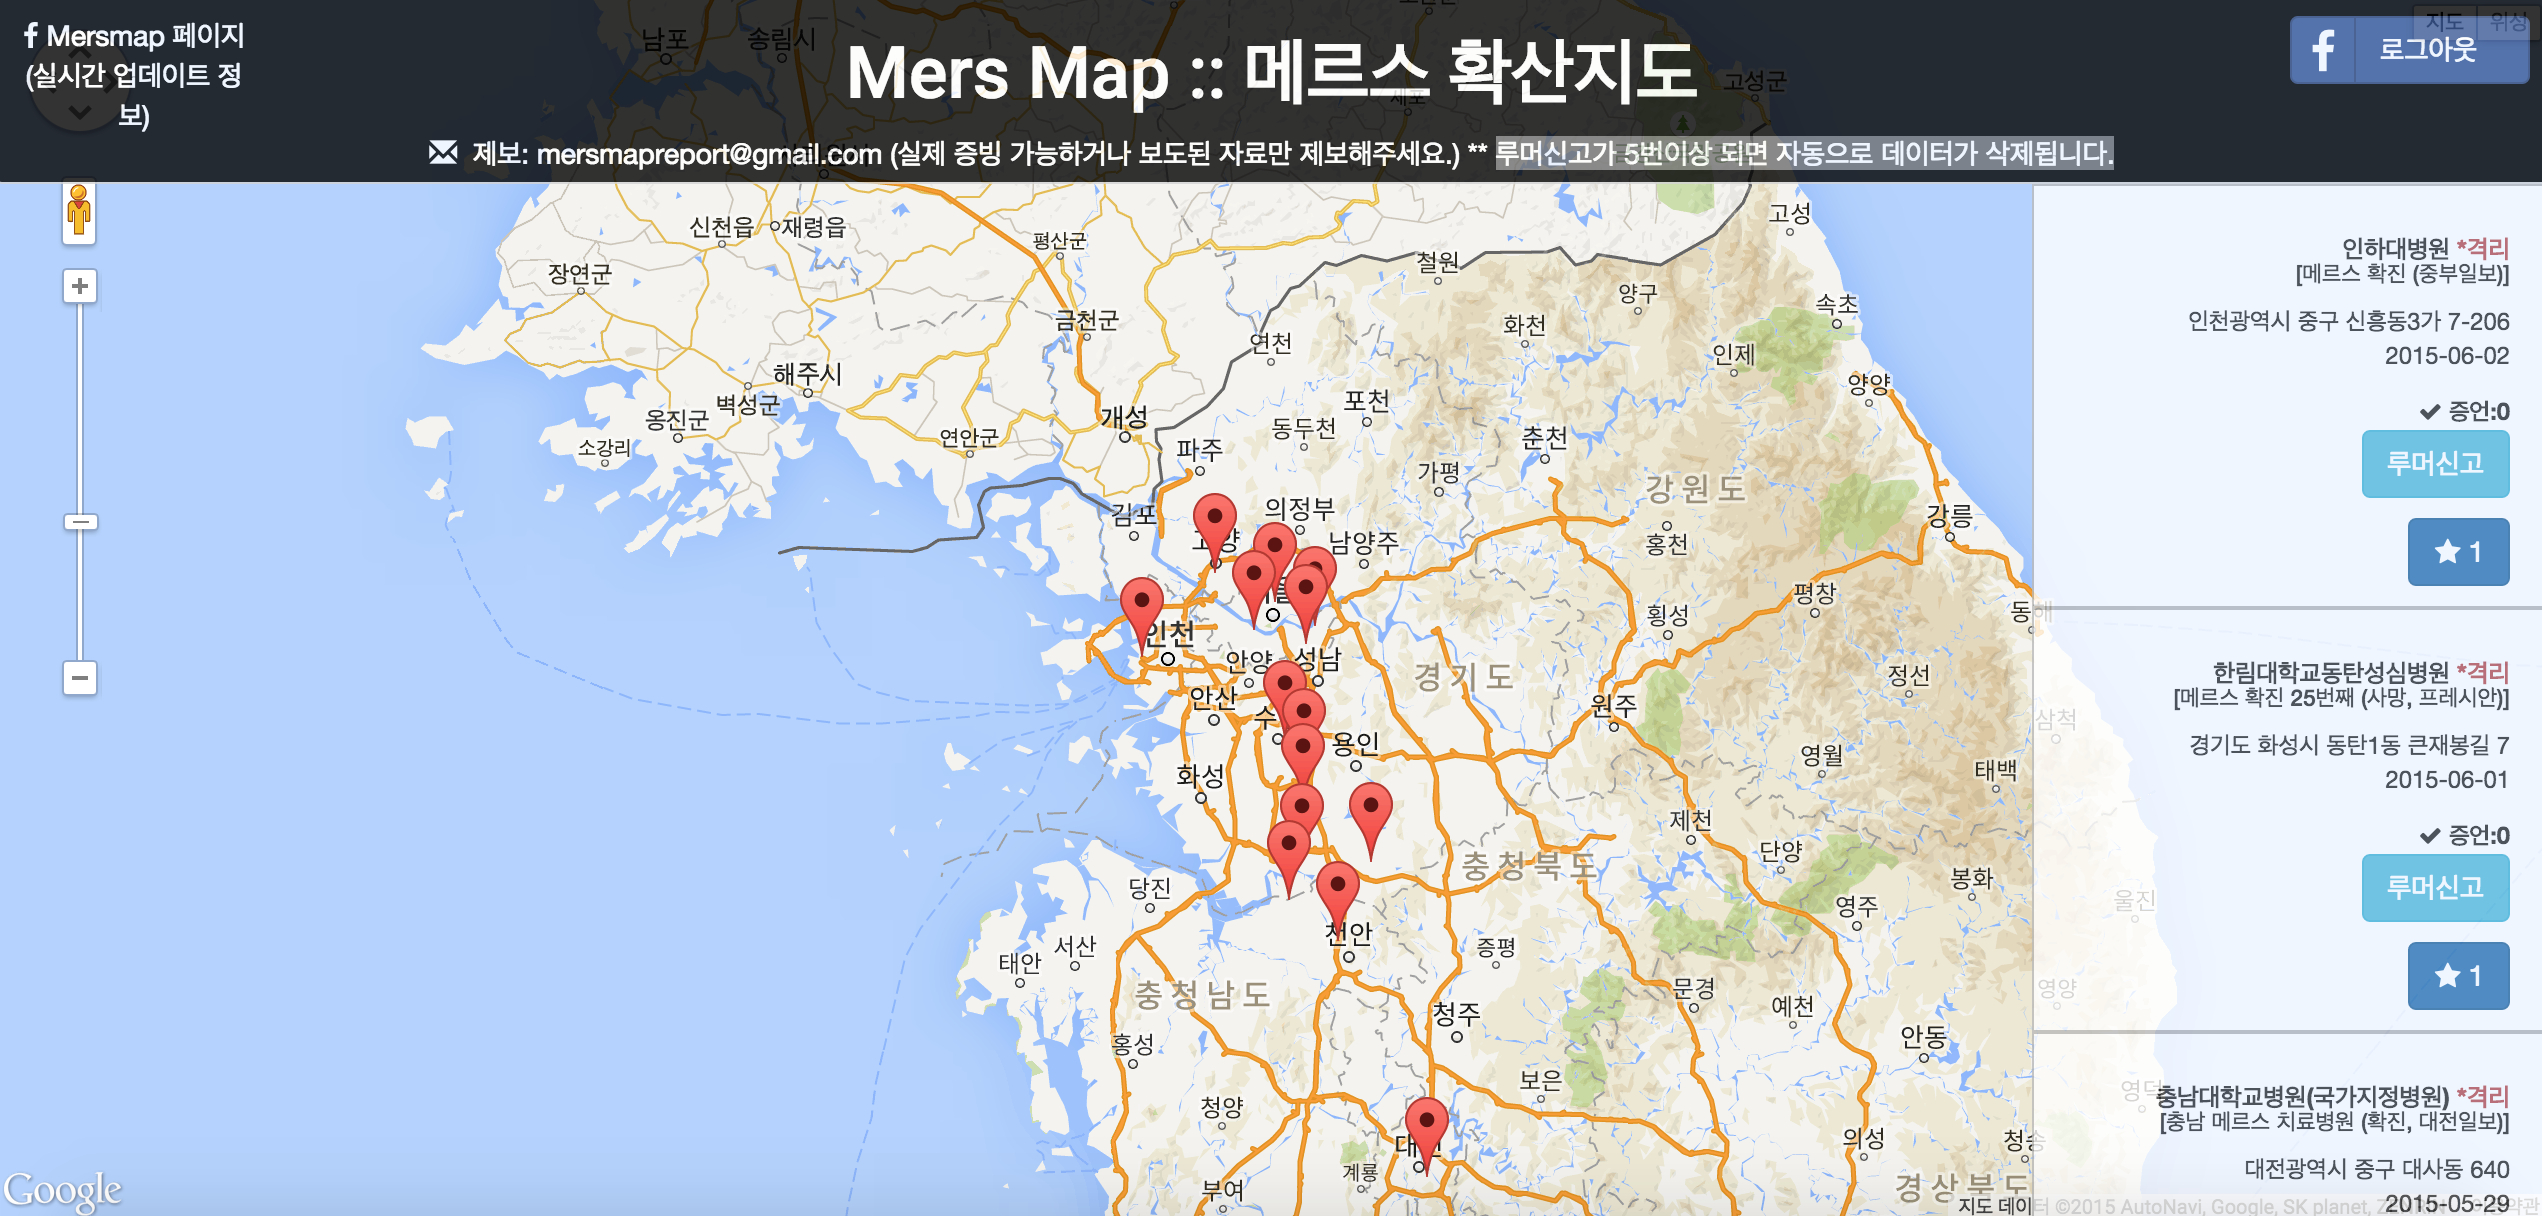 mers map